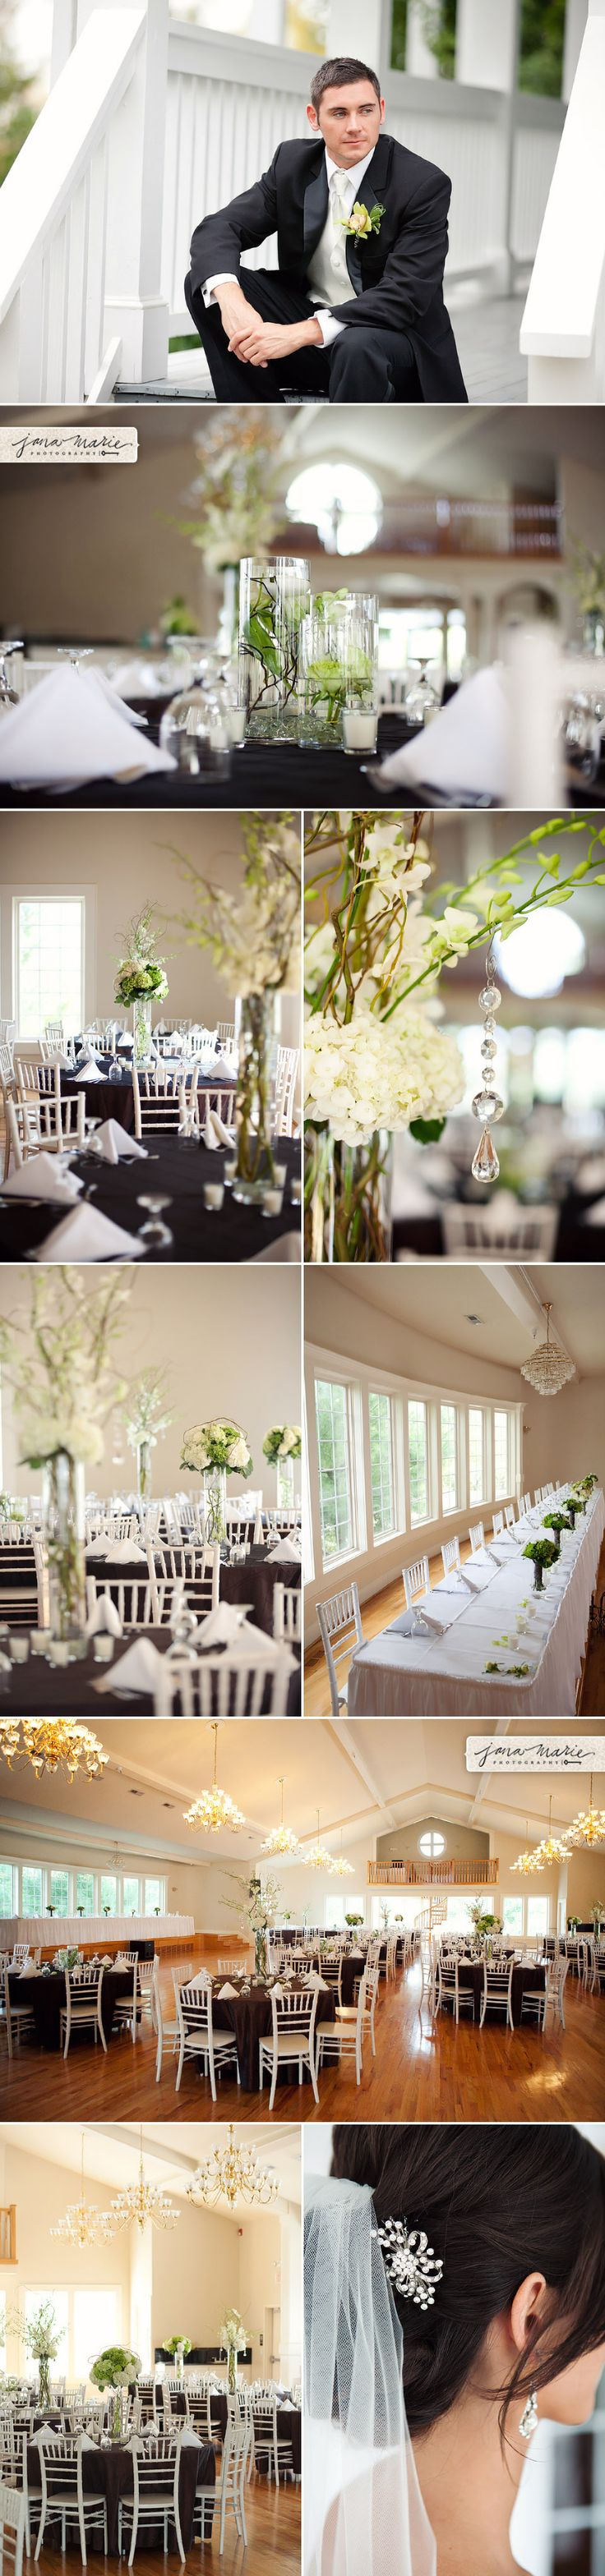 hawthorne house/ black and white is a classic wedding choice. #DonnaMorganEngaged